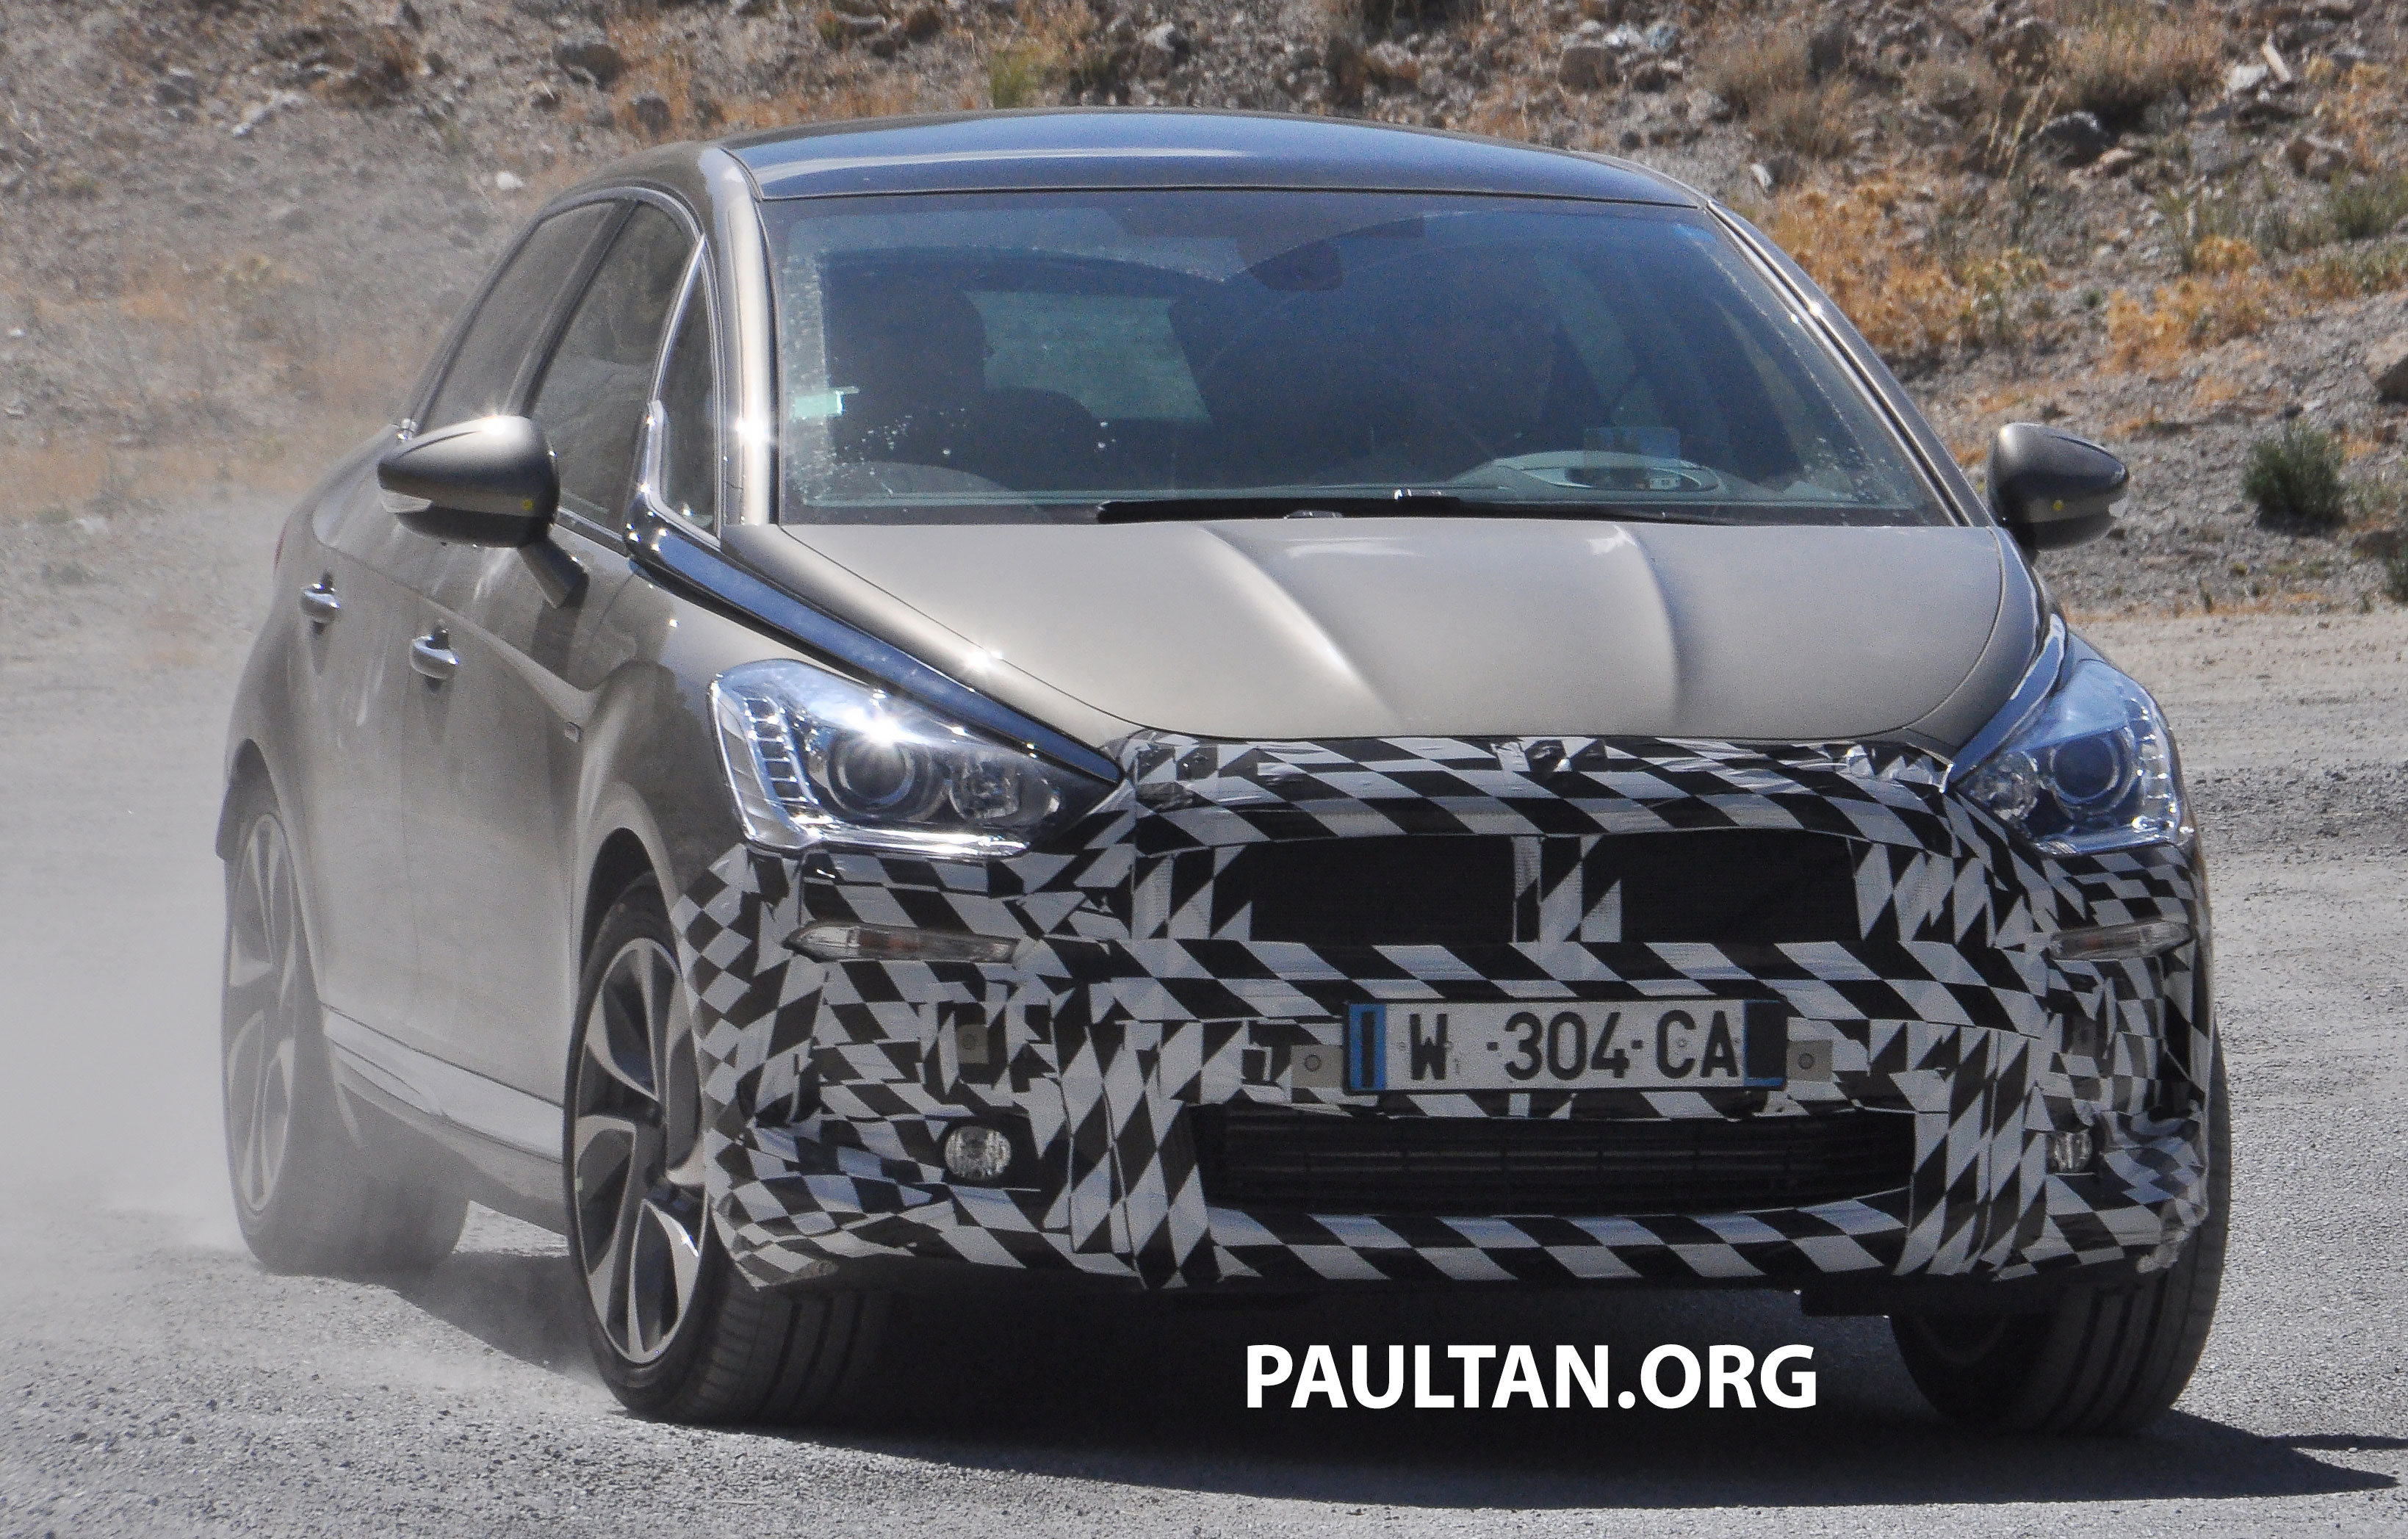 spyshot facelifted citroen ds5 shows its new nose image